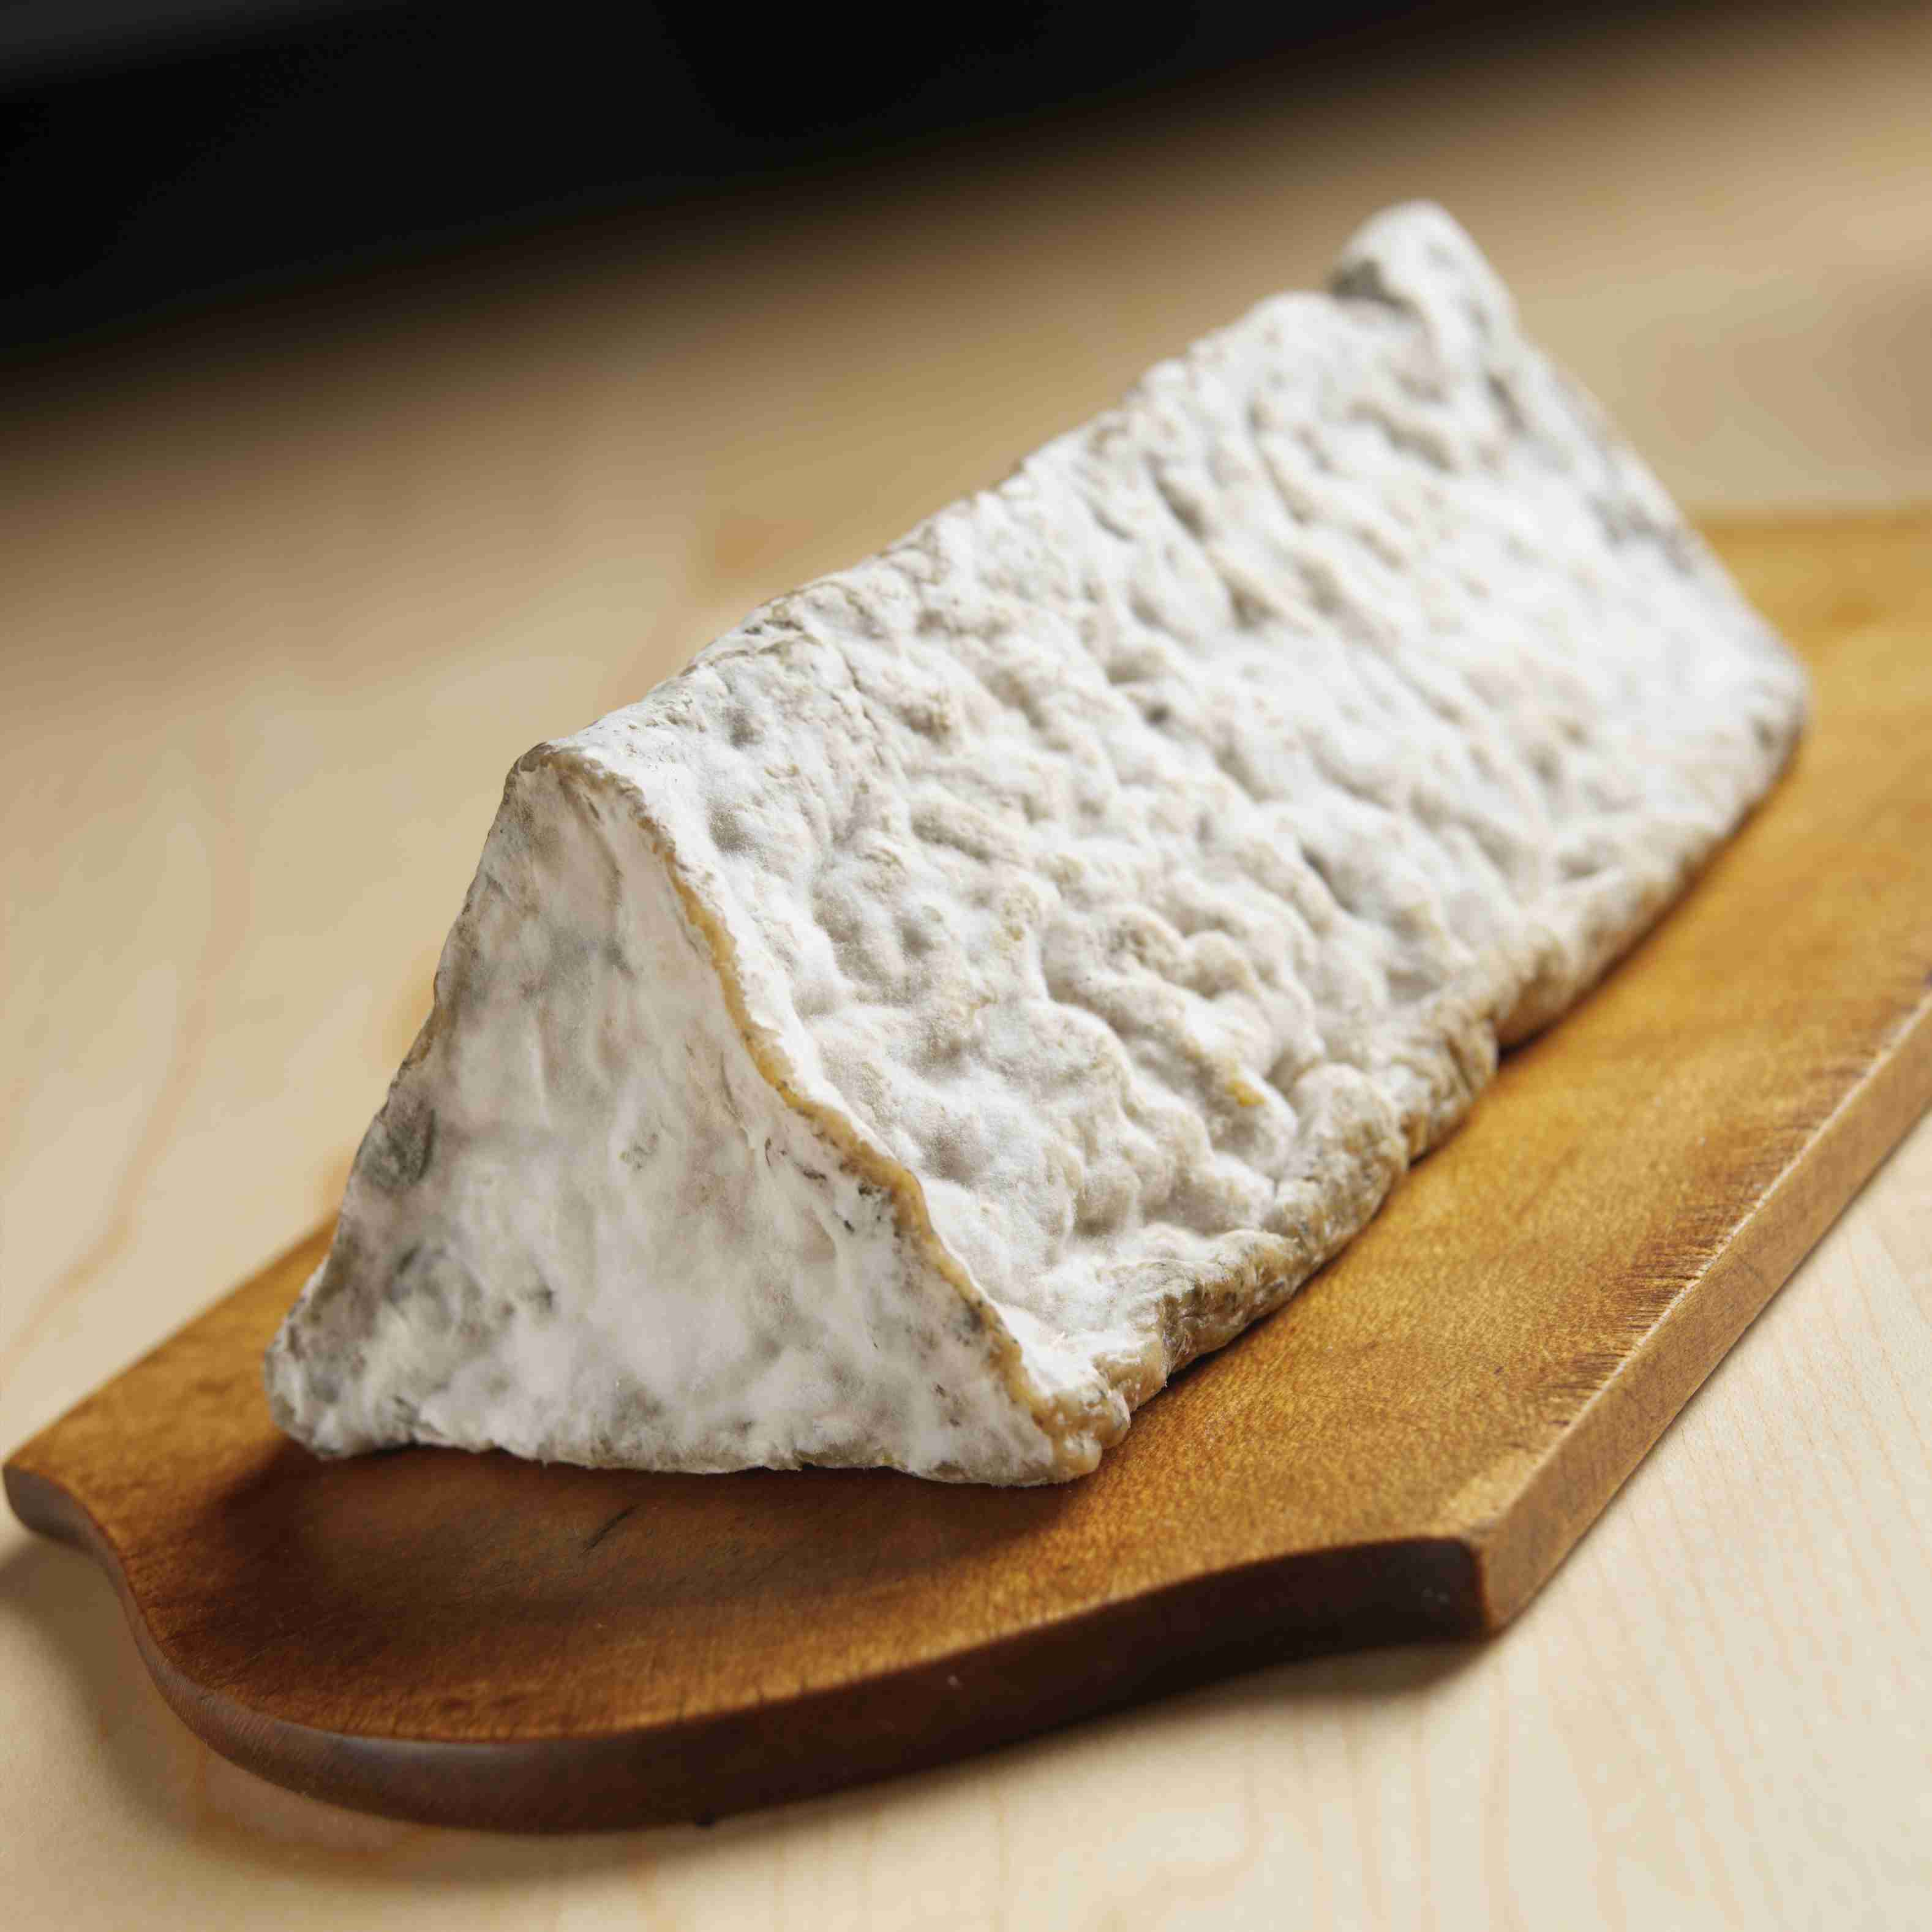 Aged goat cheese